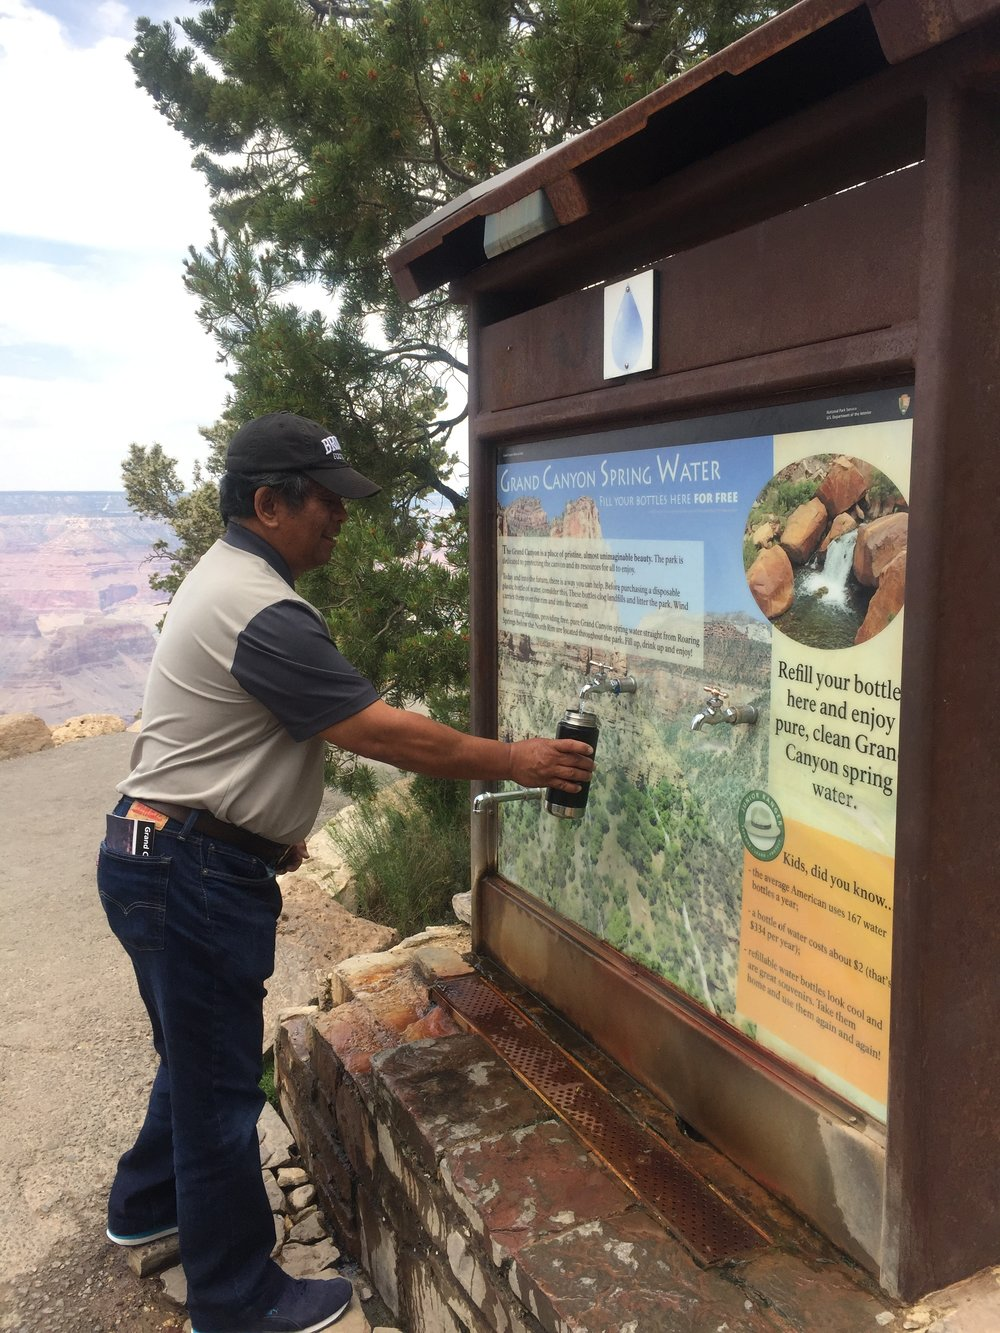 My dad refilling his up at Yavapai Point with Grand Canyon spring water.